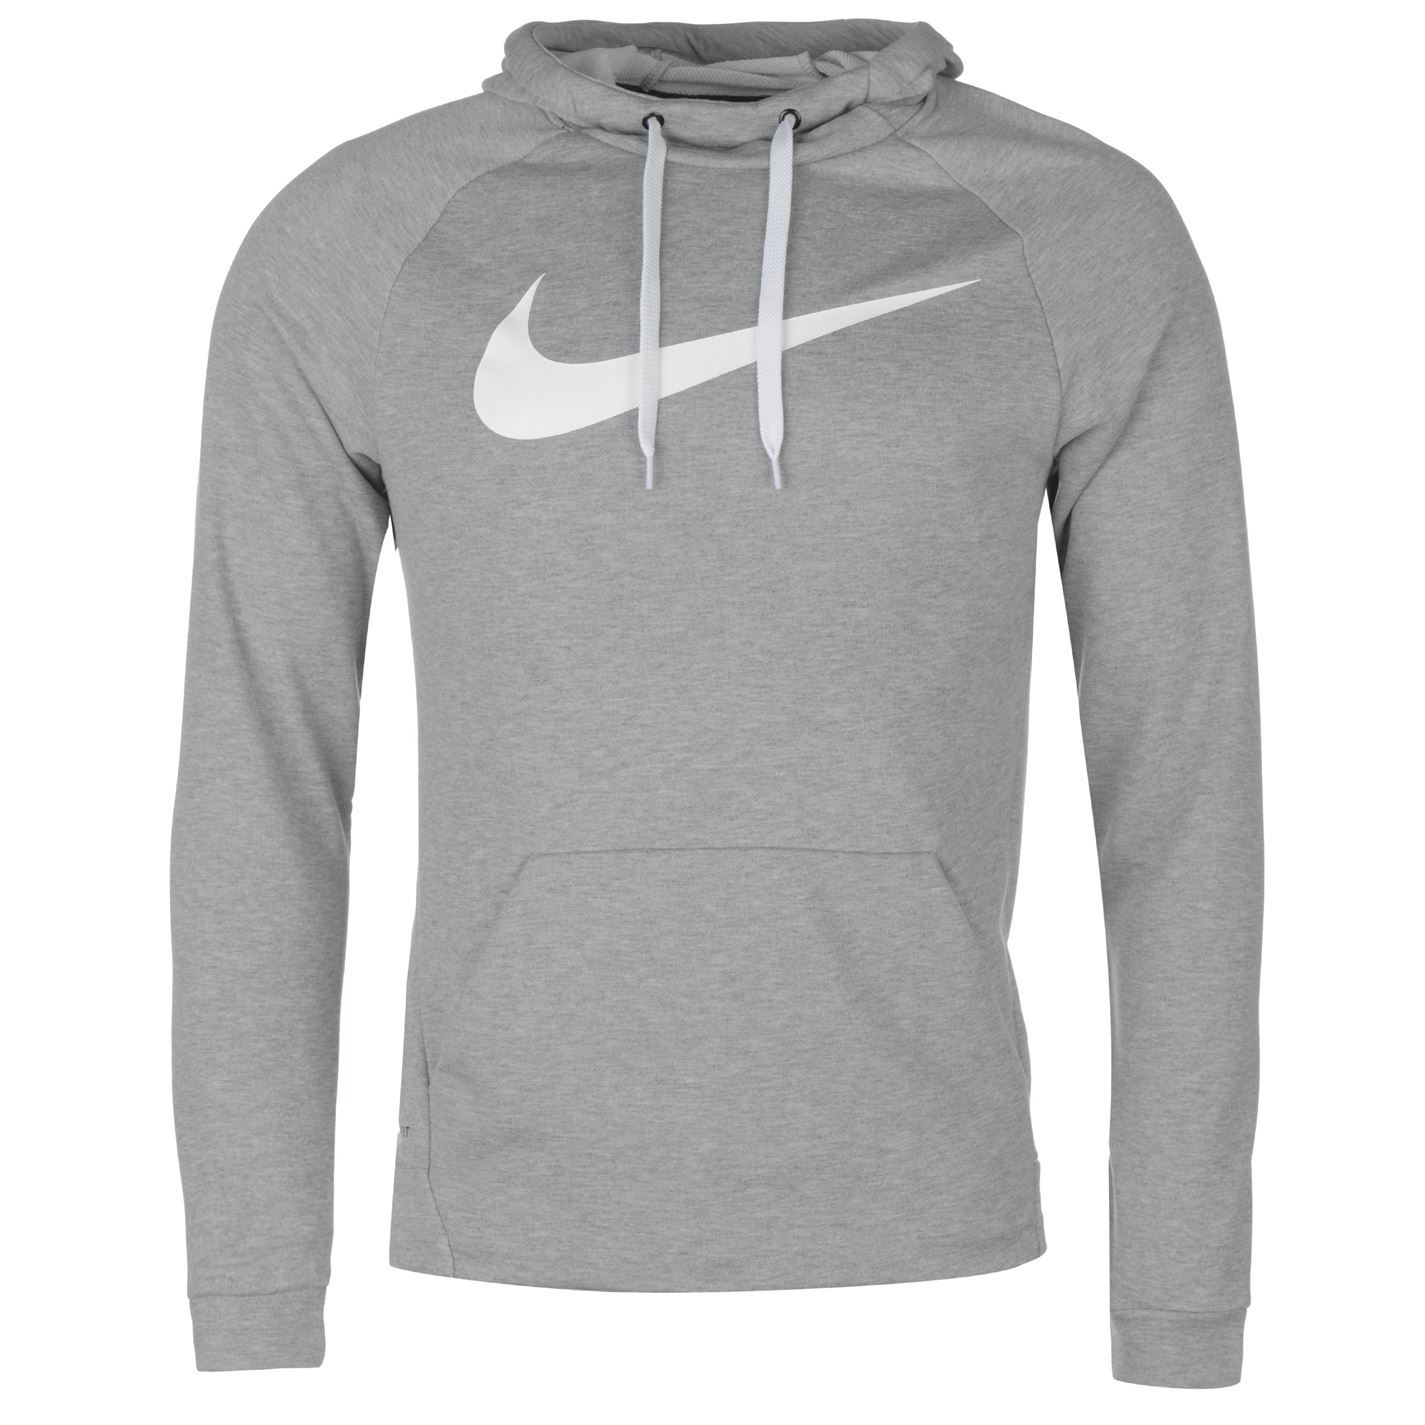 Nike-Dri-Fit-Swoosh-Pullover-Hoody-Mens-OTH-Hoodie-Sweatshirt-Sweater-Hooded-Top thumbnail 12